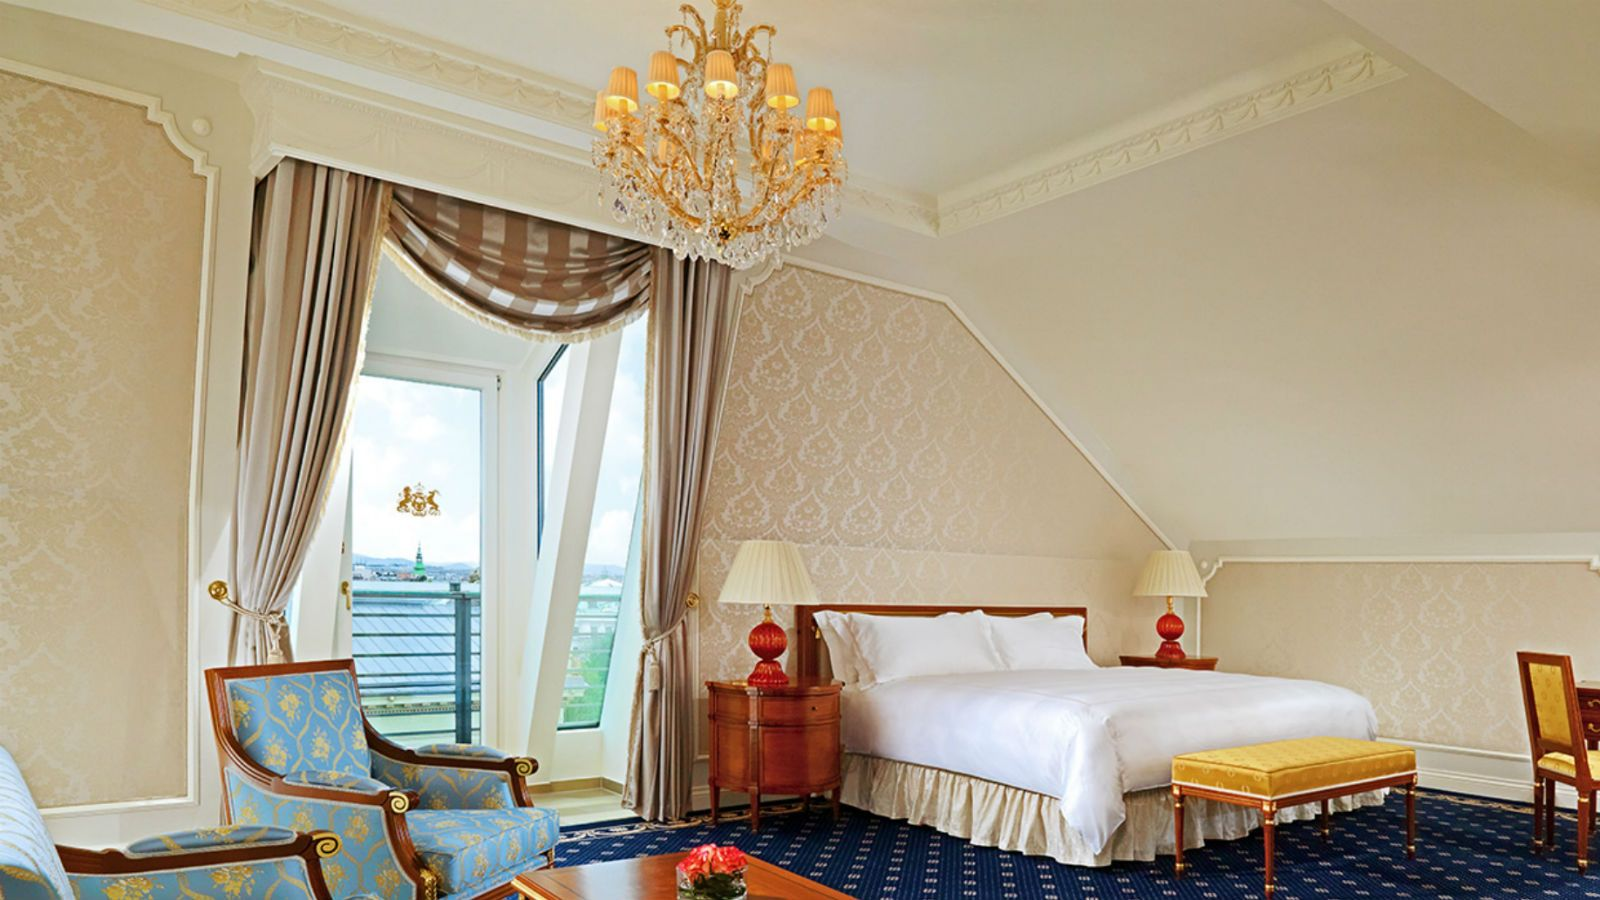 Junior Suite, Hotel in Wien, Hotel Imperial Wien